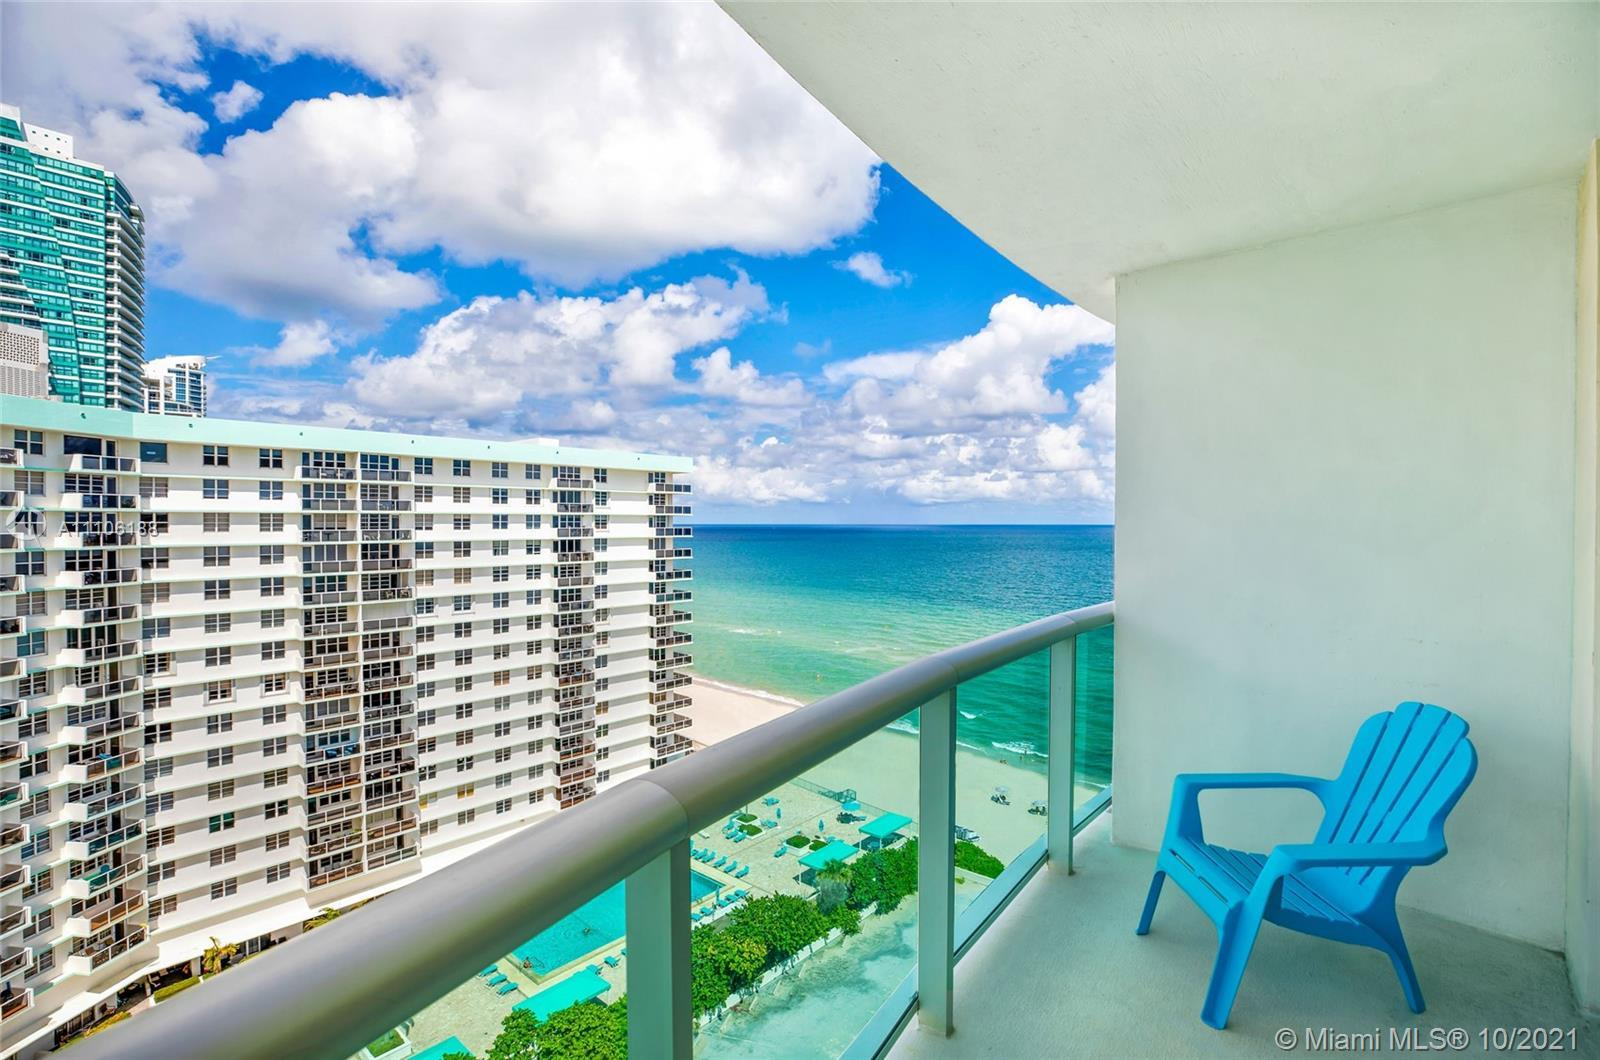 ** OPPORTUNITY KNOCKS! ** AMAZING 1BR/1BA OCEAN VIEW APT @ DESIRABLE THE TIDES ON HOLLYWOOD BEACH. L